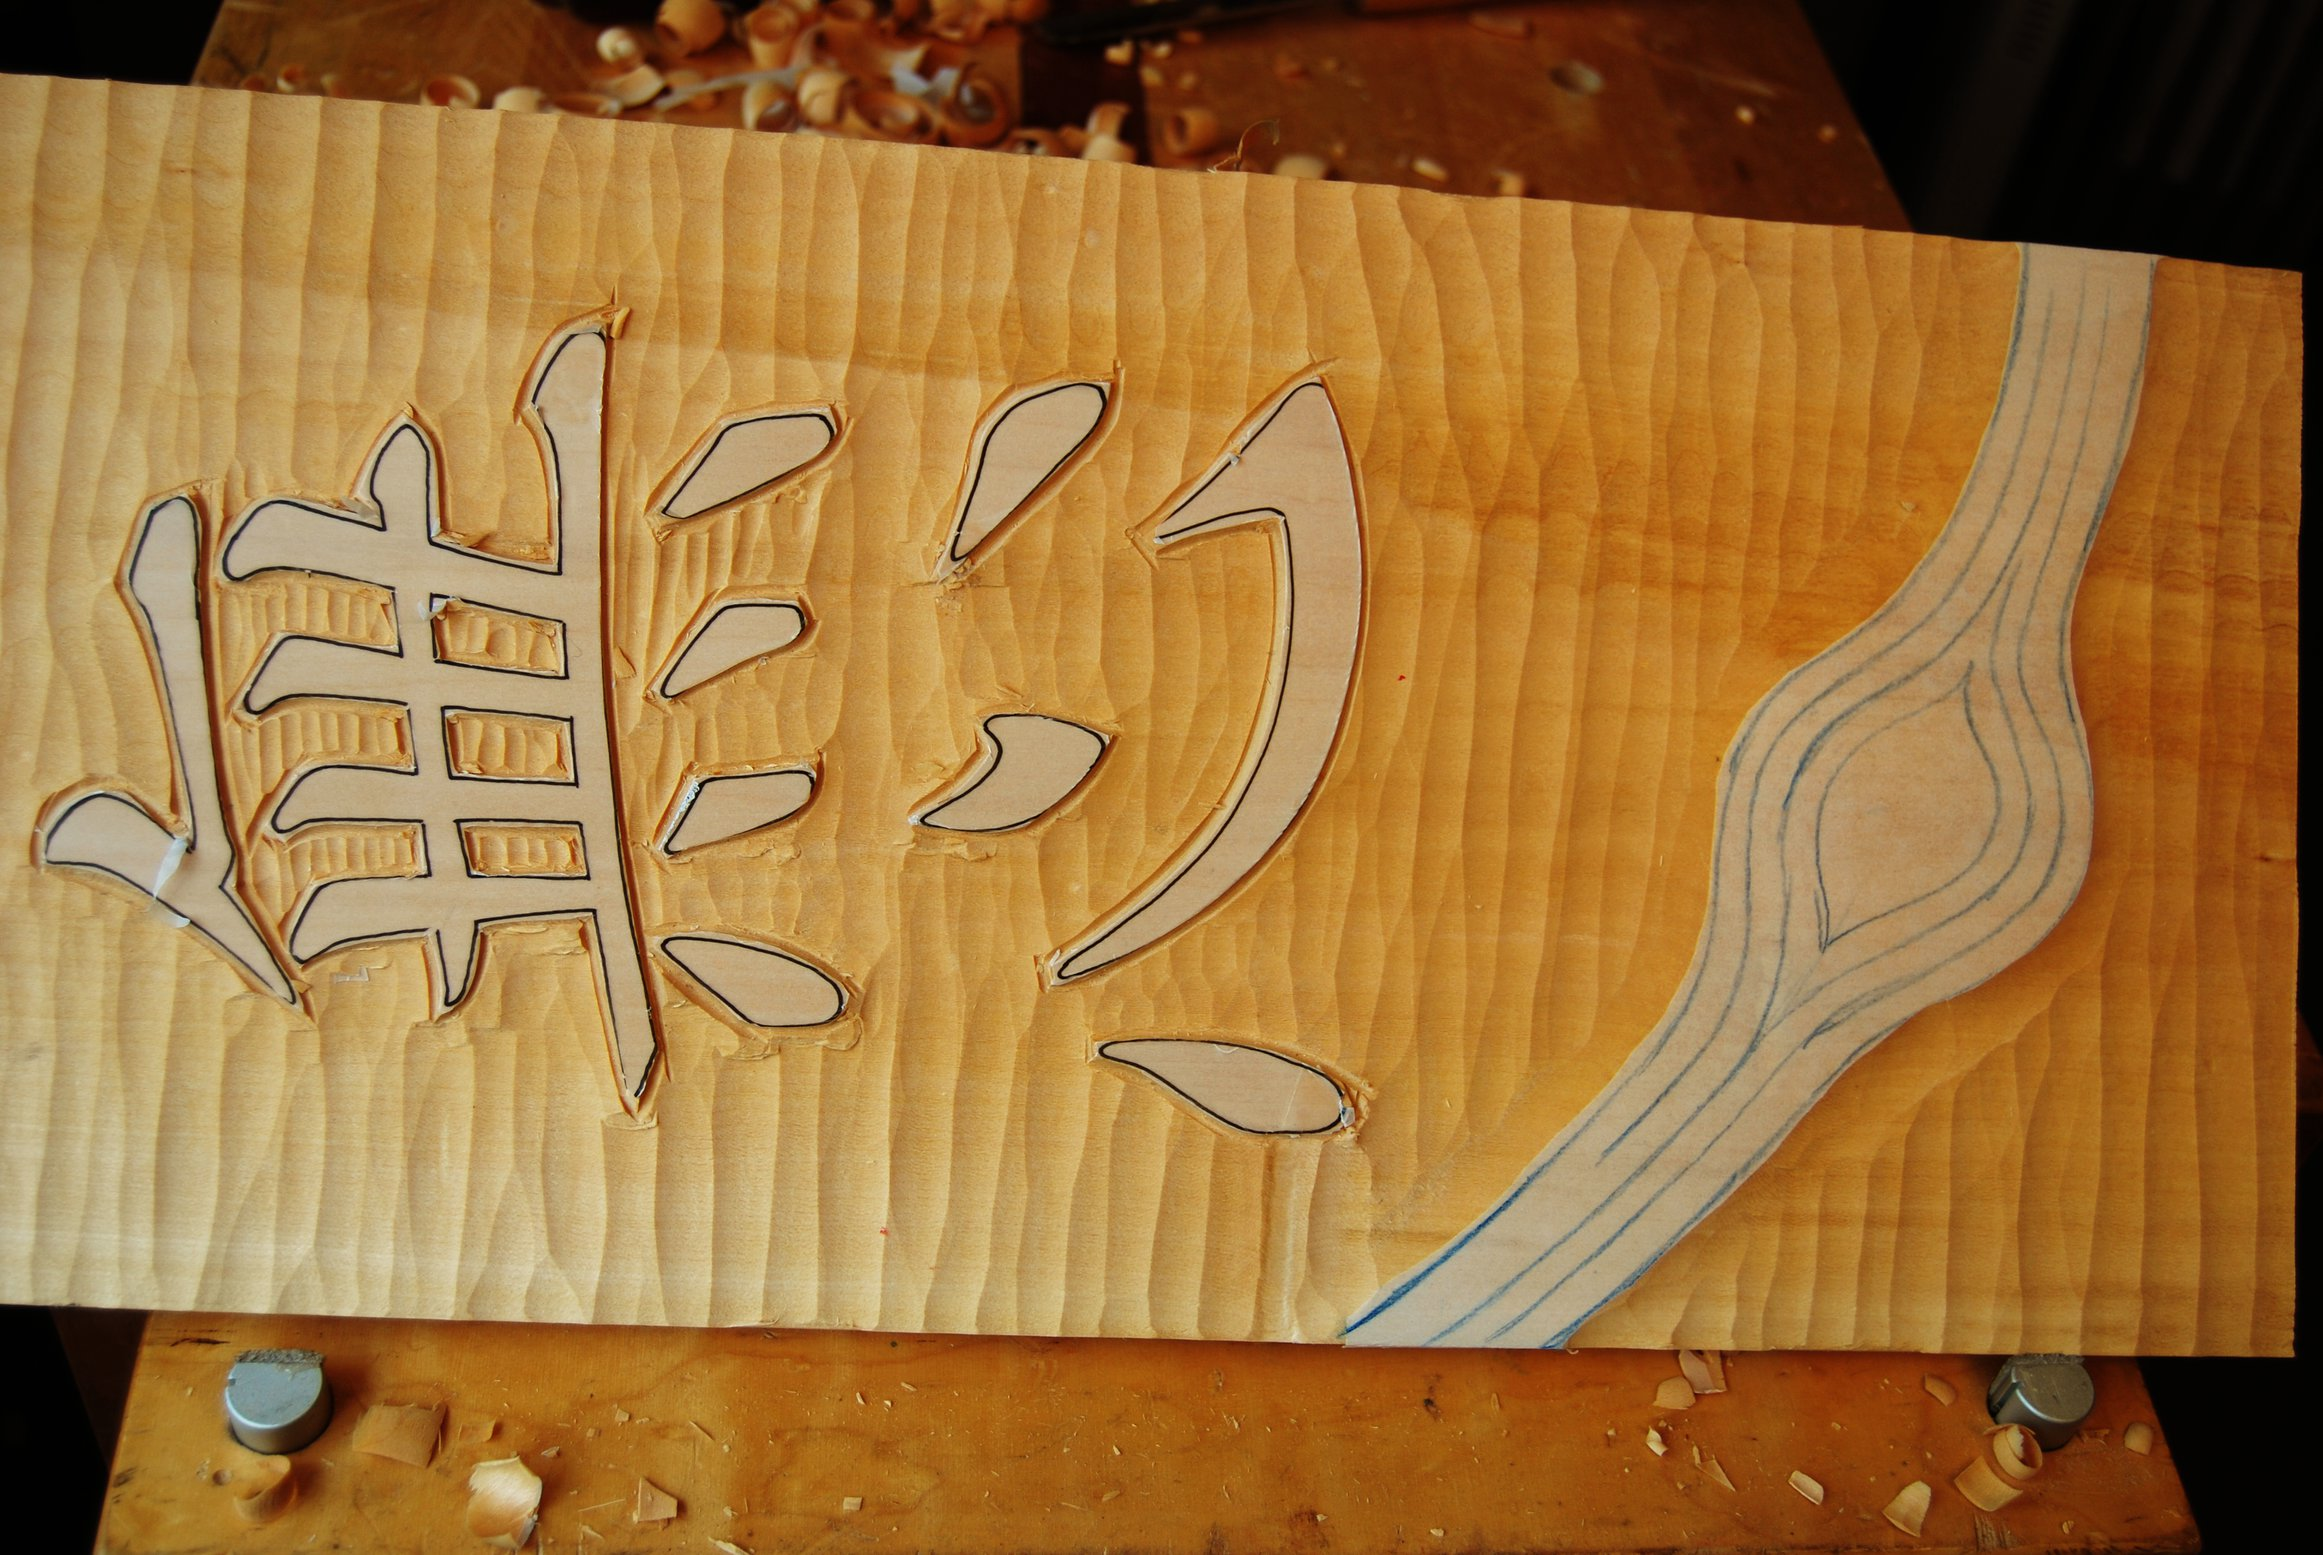 Relief Carving Beginners: How to carve wood u a start up guide for beginners relief. Pdf the ...